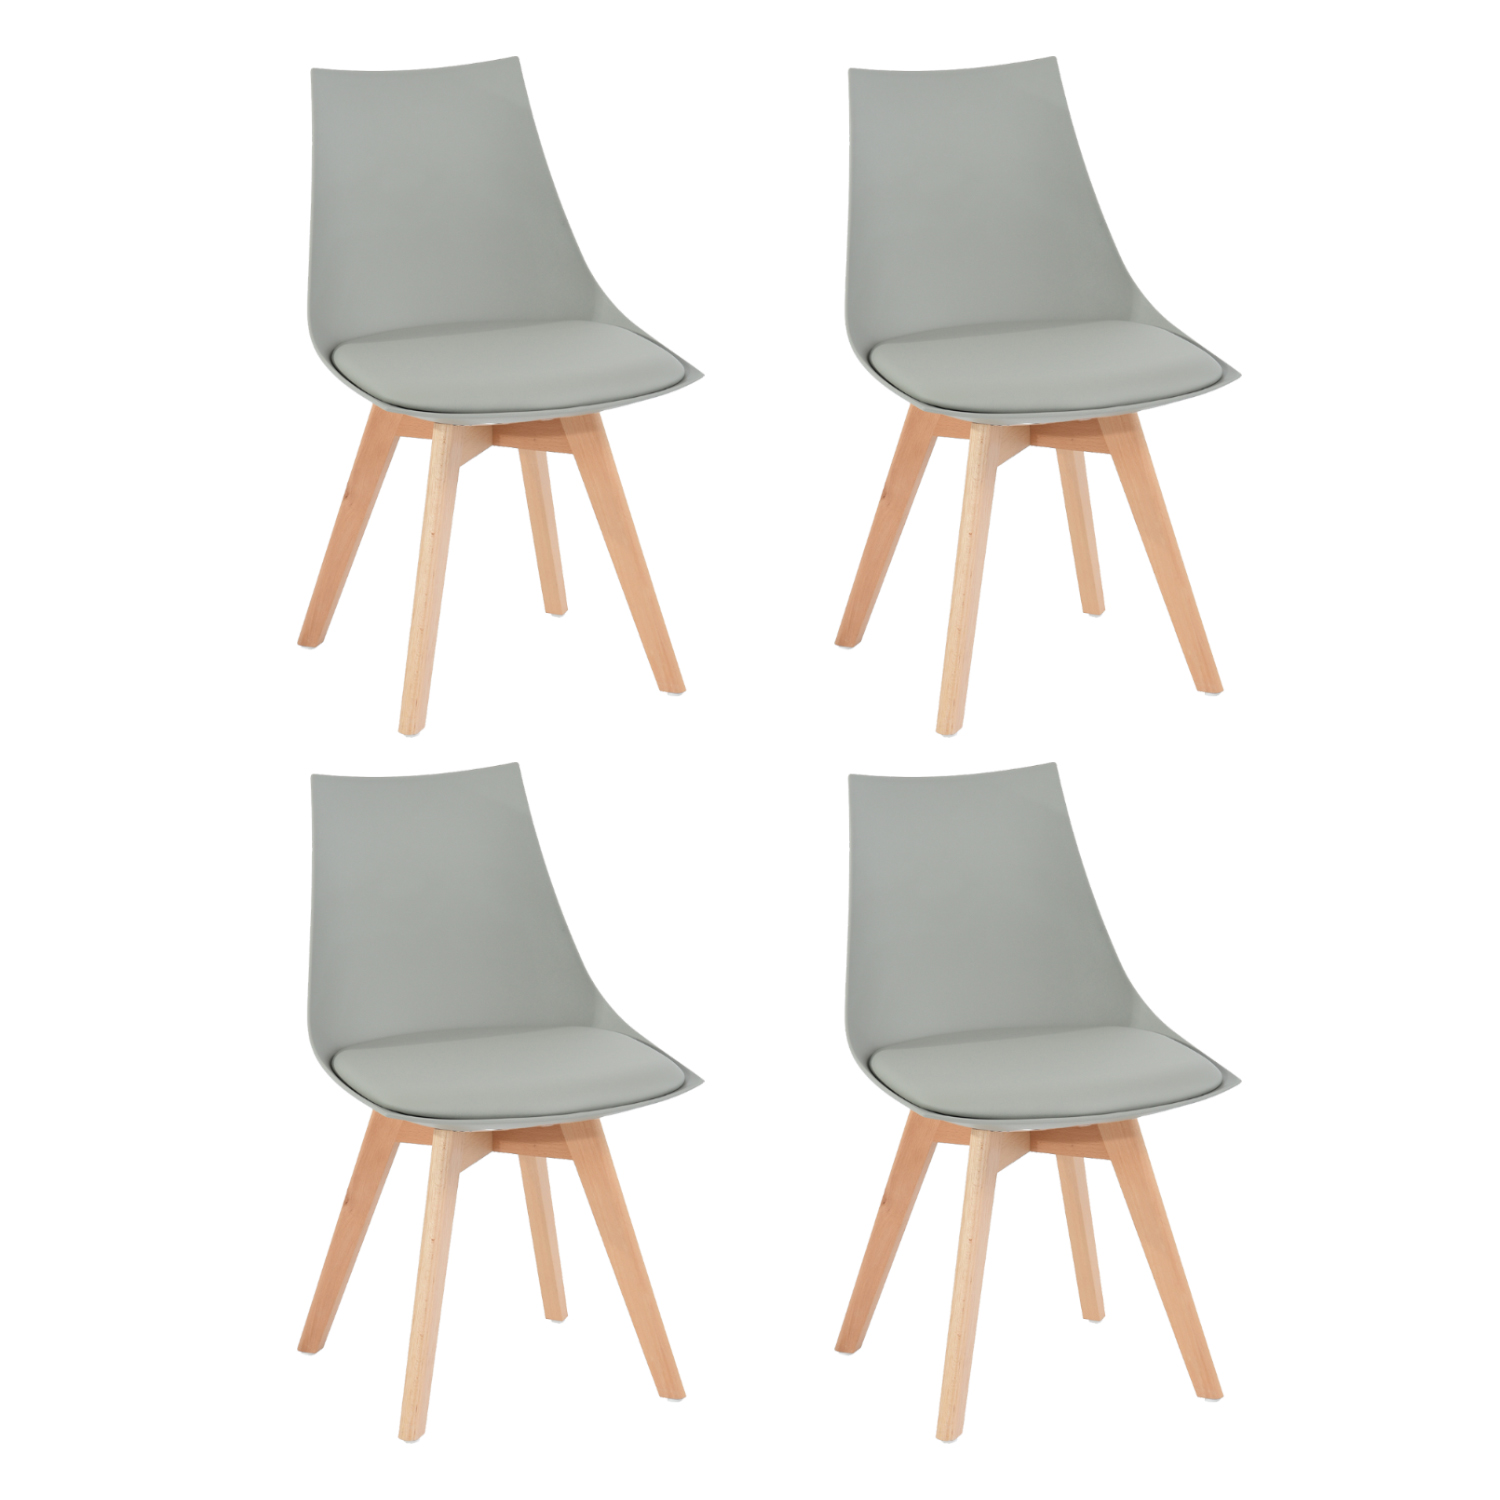 EGGREE Set Of 4pcs Mint Padded Dining Chair For Dining Room, Living Room And Bedroom - Grey - 2-8days EU Warehouse